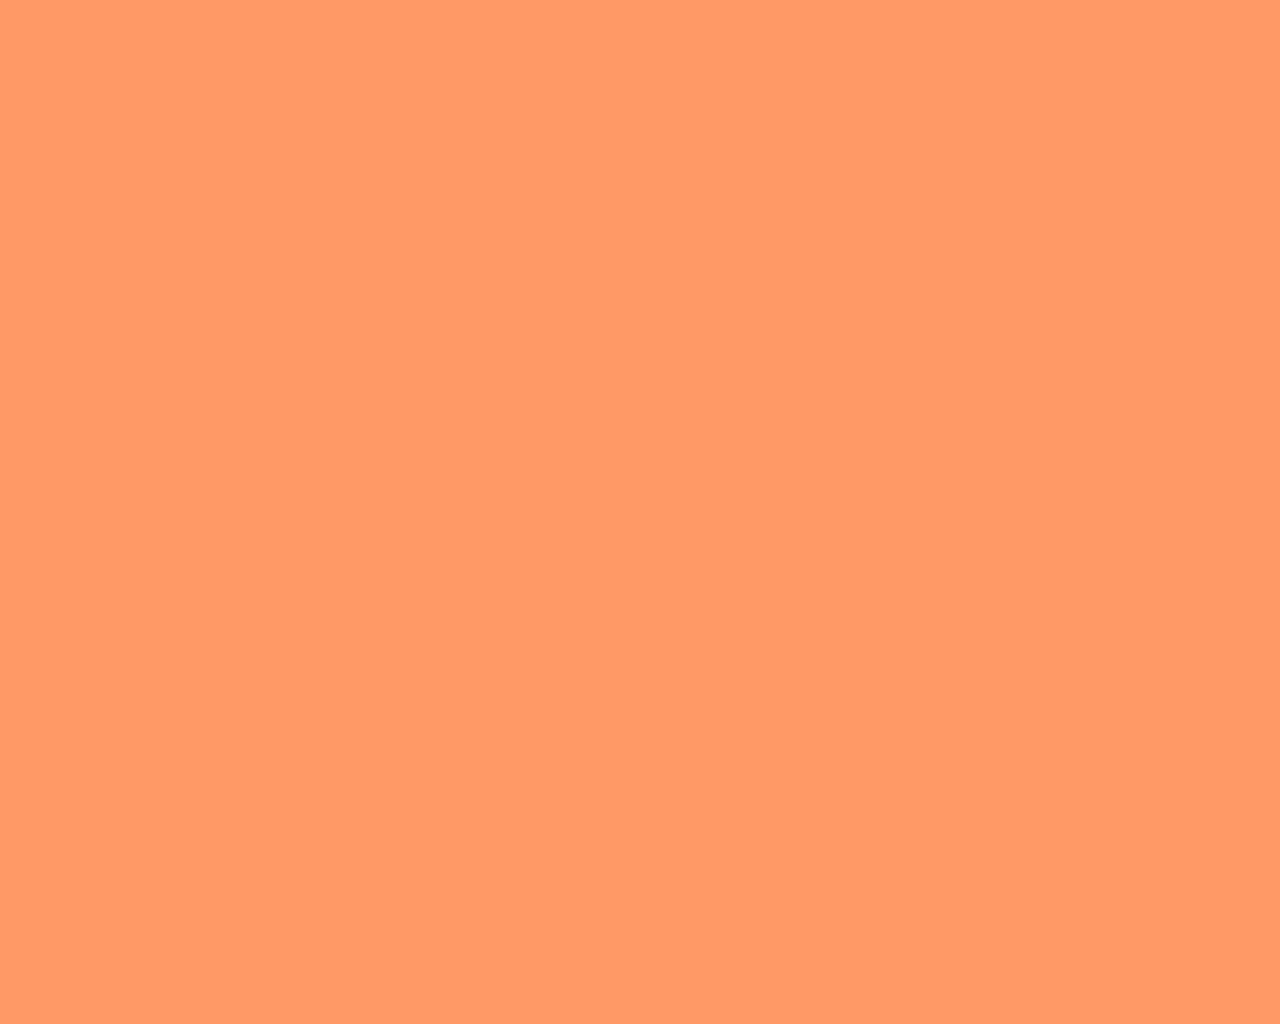 1280x1024 Pink-orange Solid Color Background